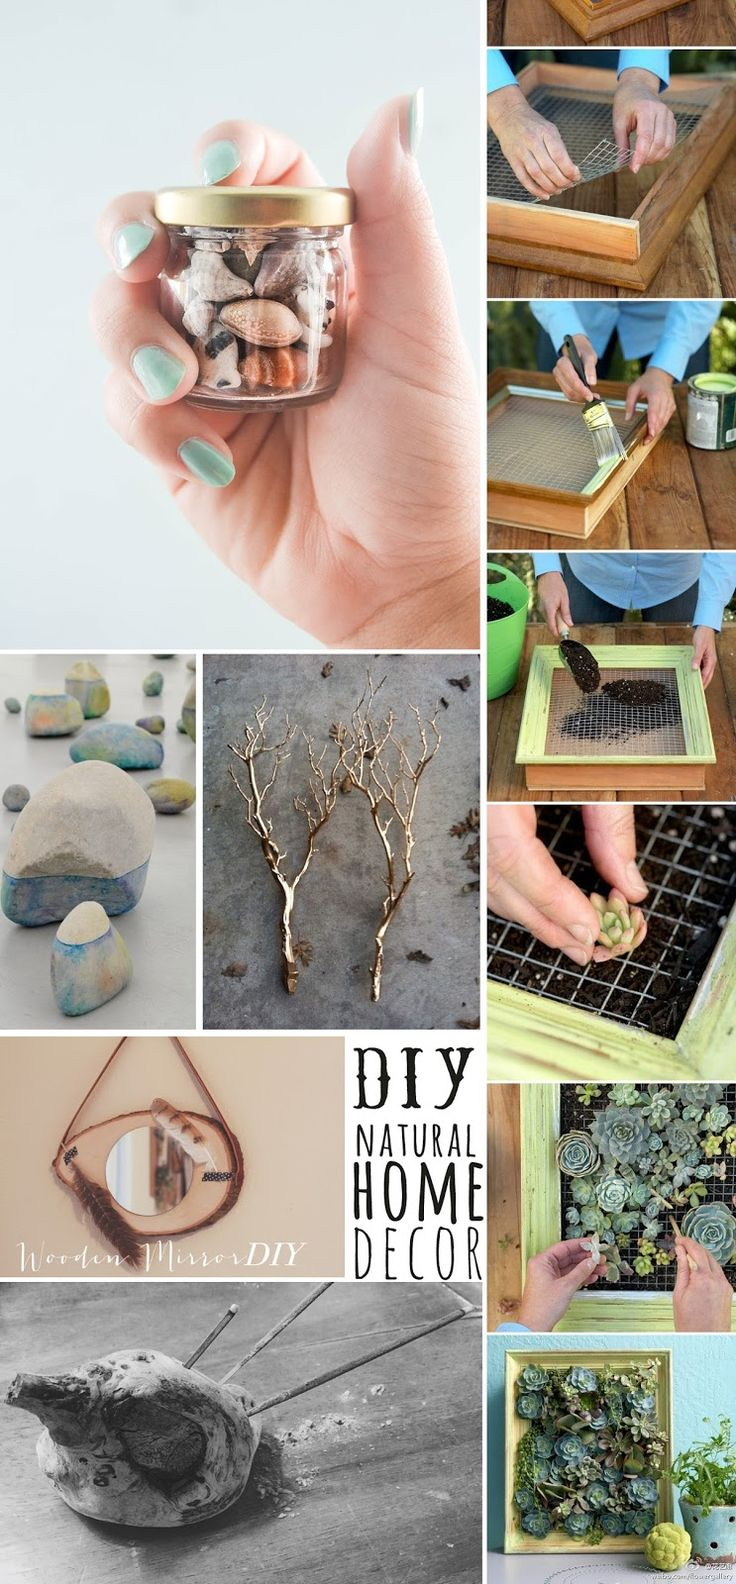 Diy natural home decor diy and crafts crafts crafts for Organic home decor